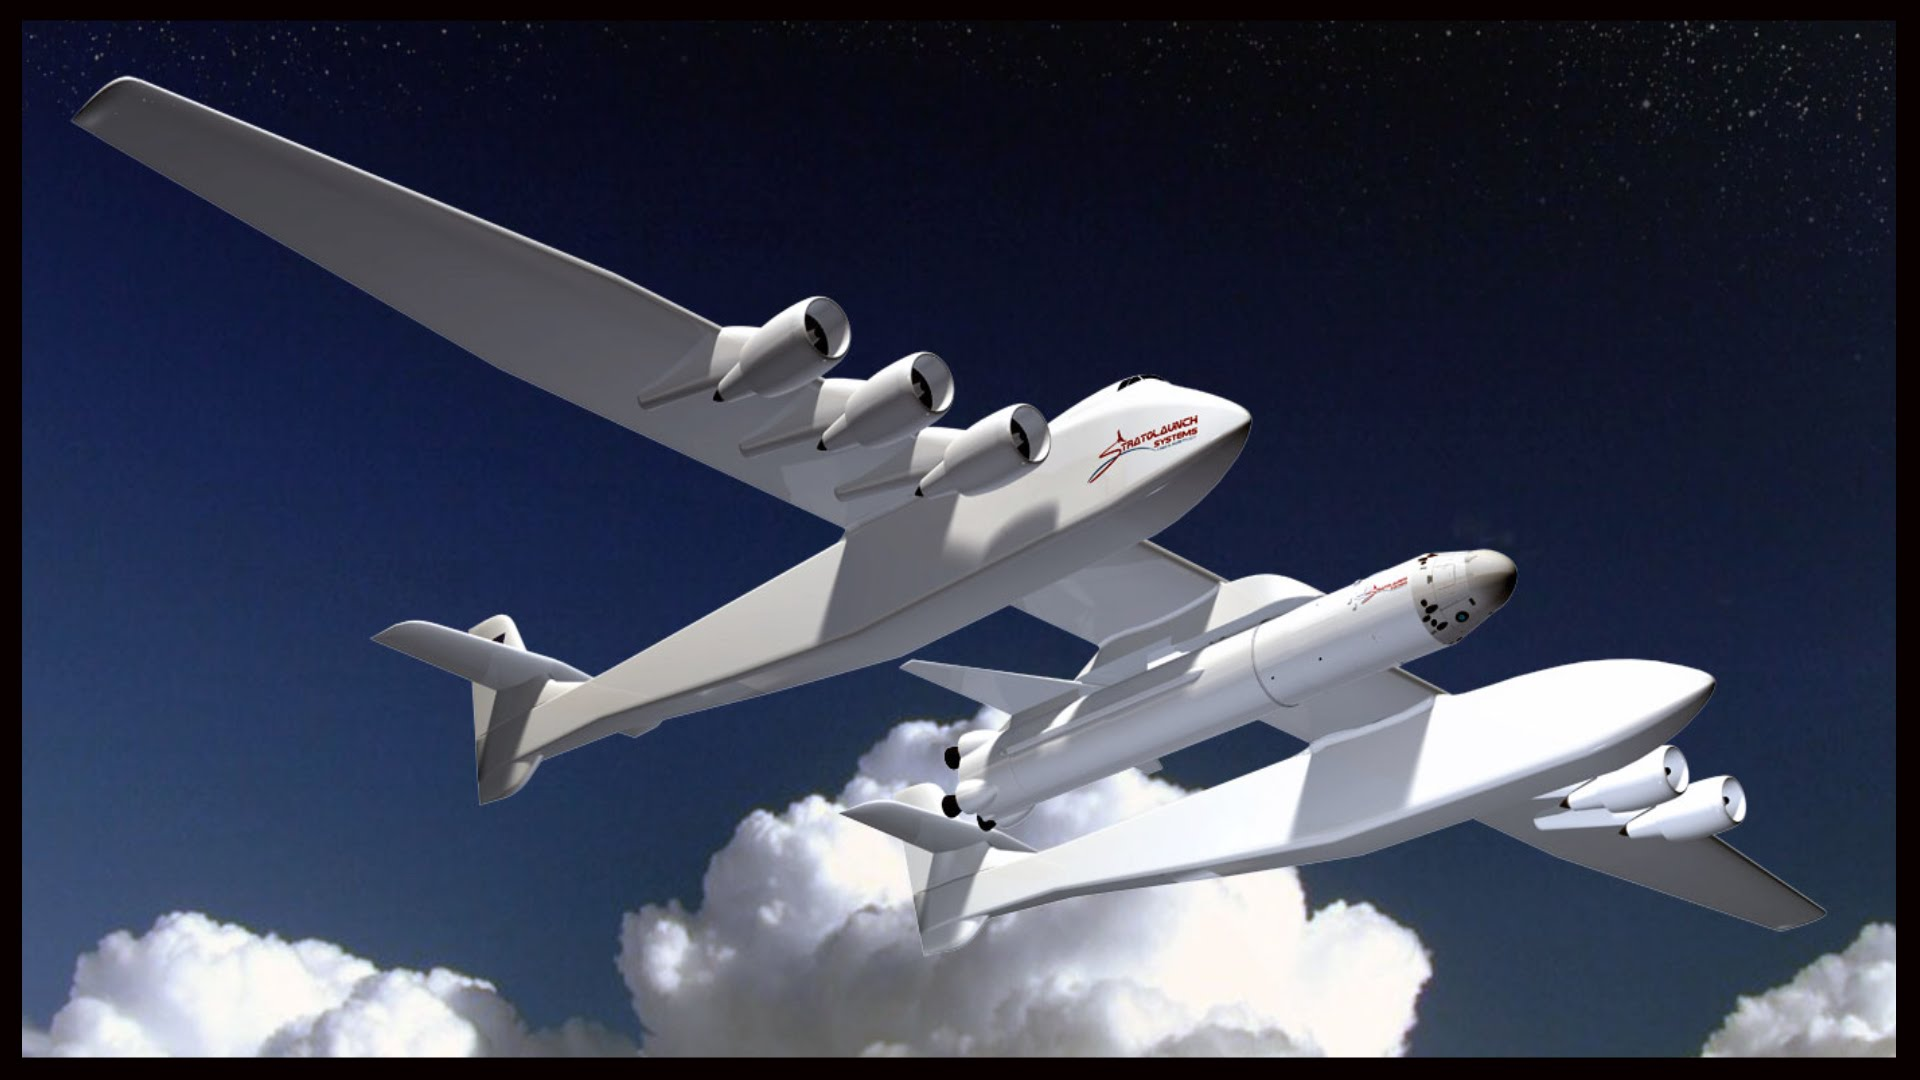 6.21.large.main.Stratolaunch